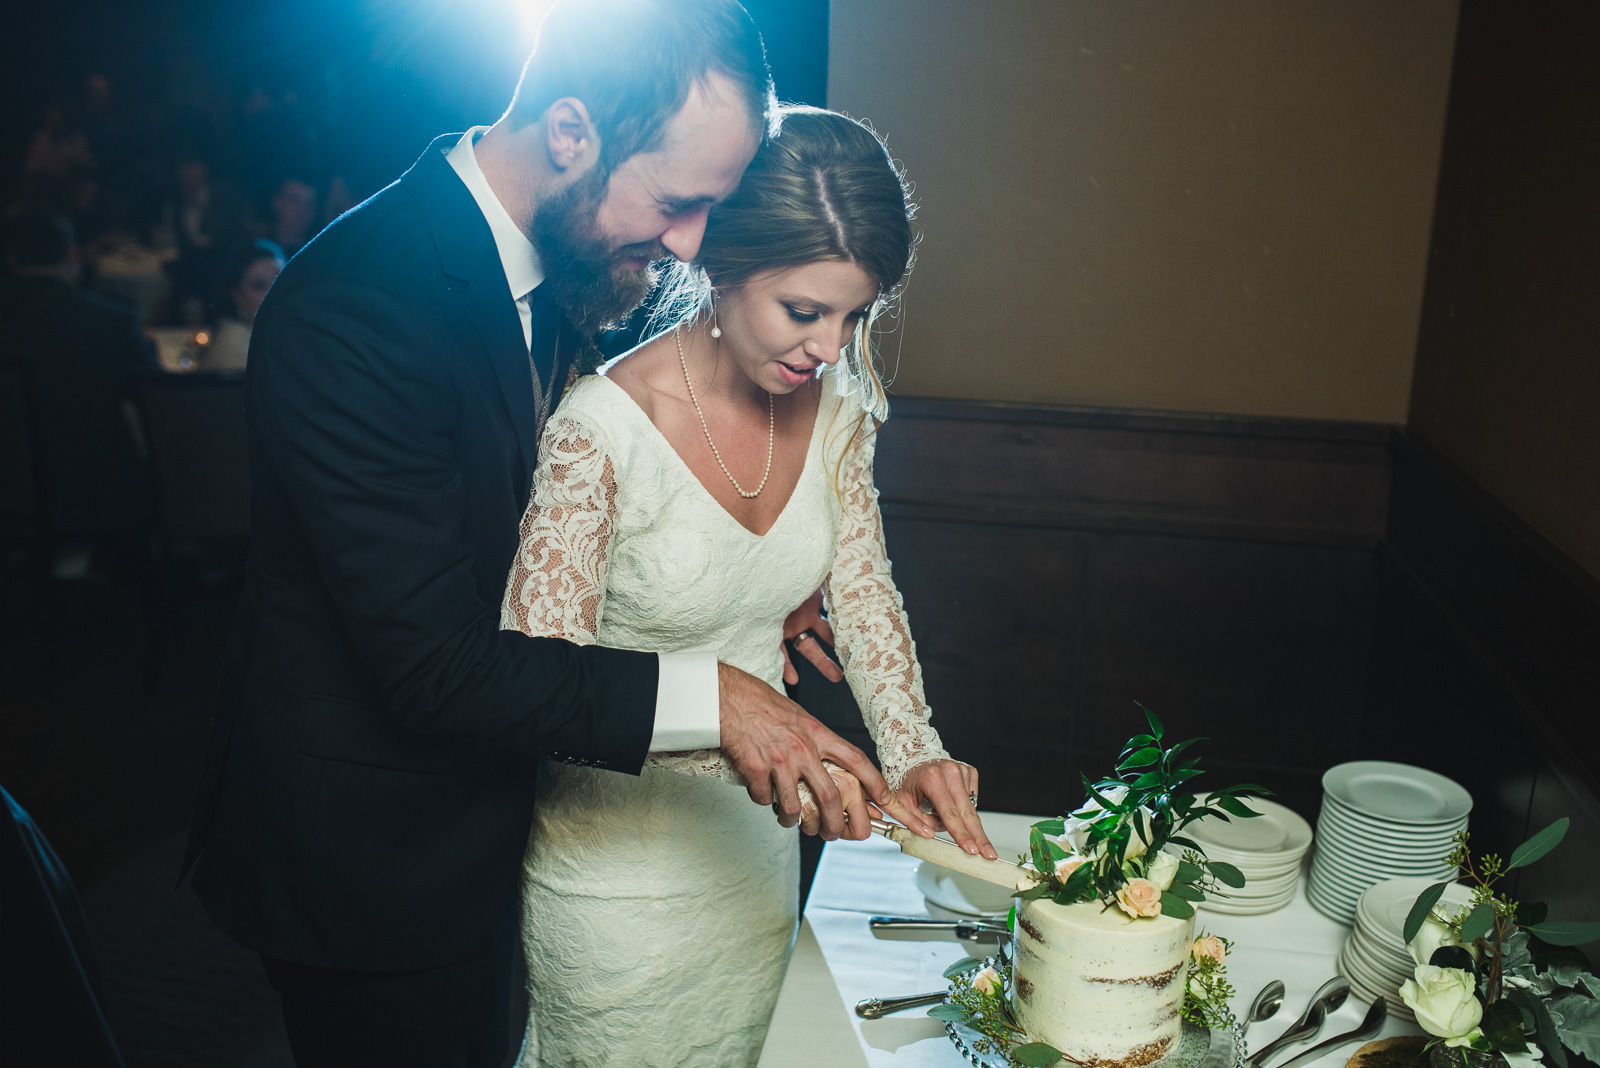 cutting the cake in the ballroom at nita lake lodge in whistler bc - victoria wedding photographers